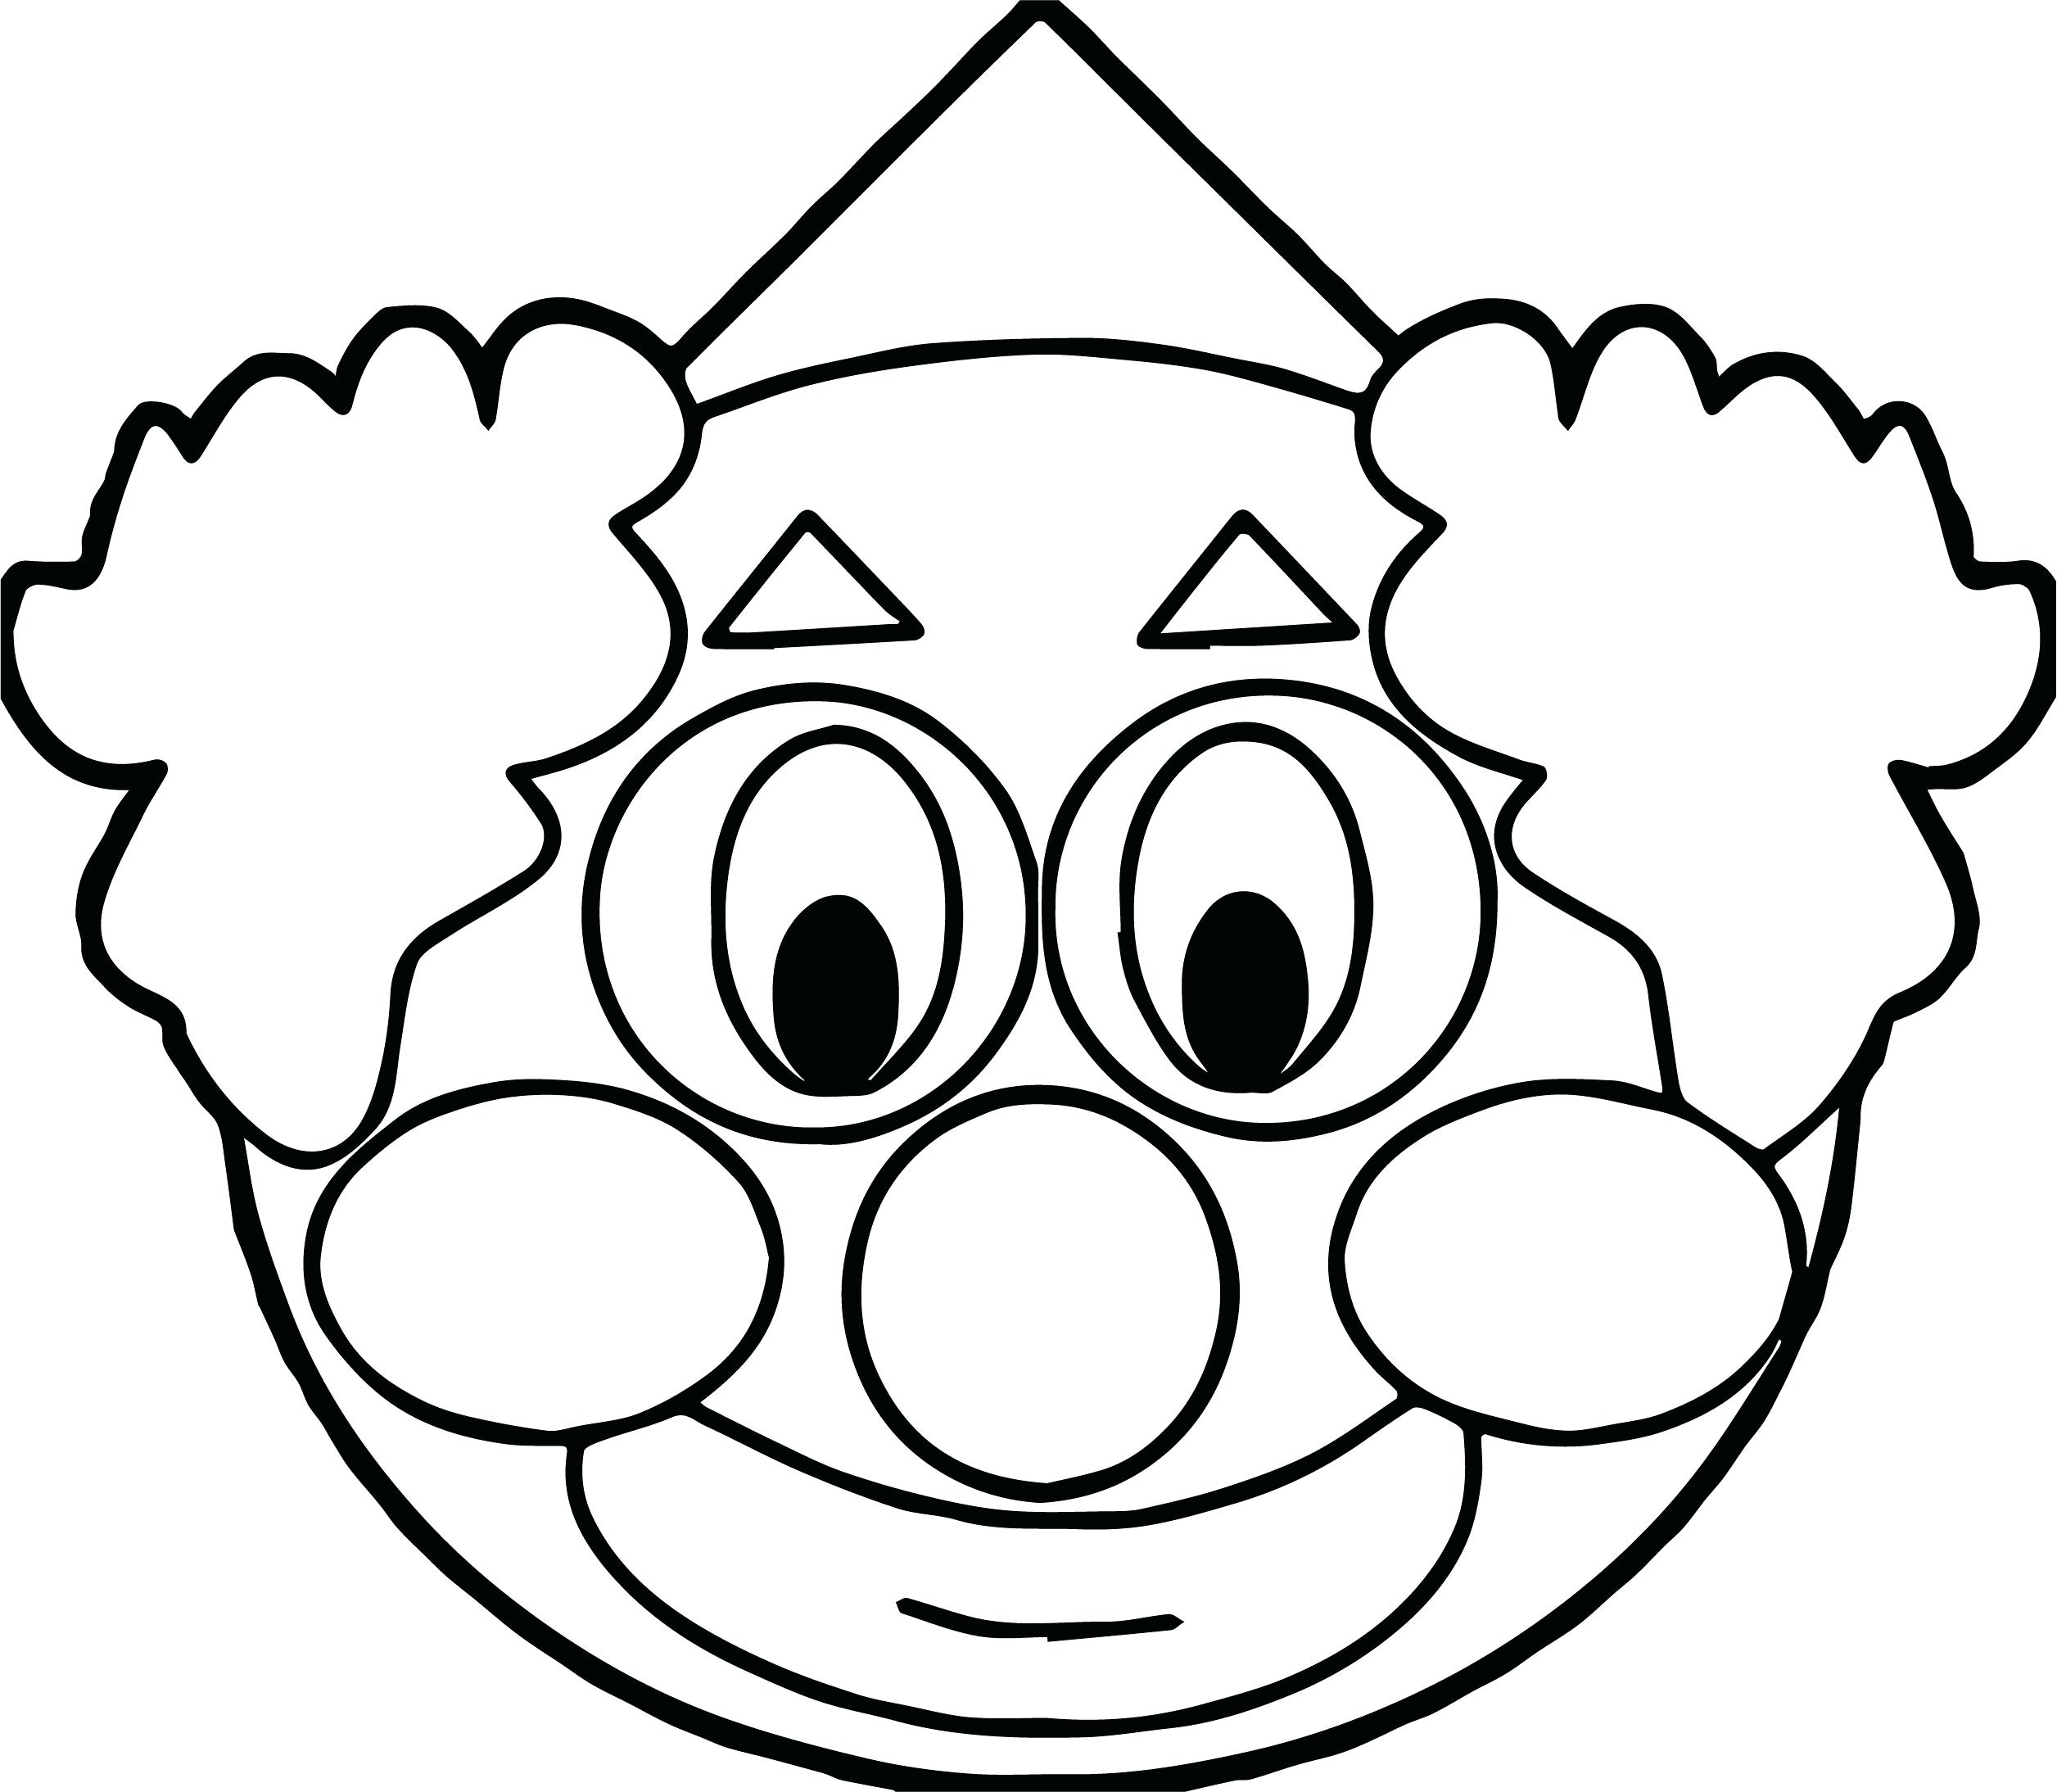 2512x2188 Coloring Pages Of Clowns With Balloons Scary Free Colouring Clown